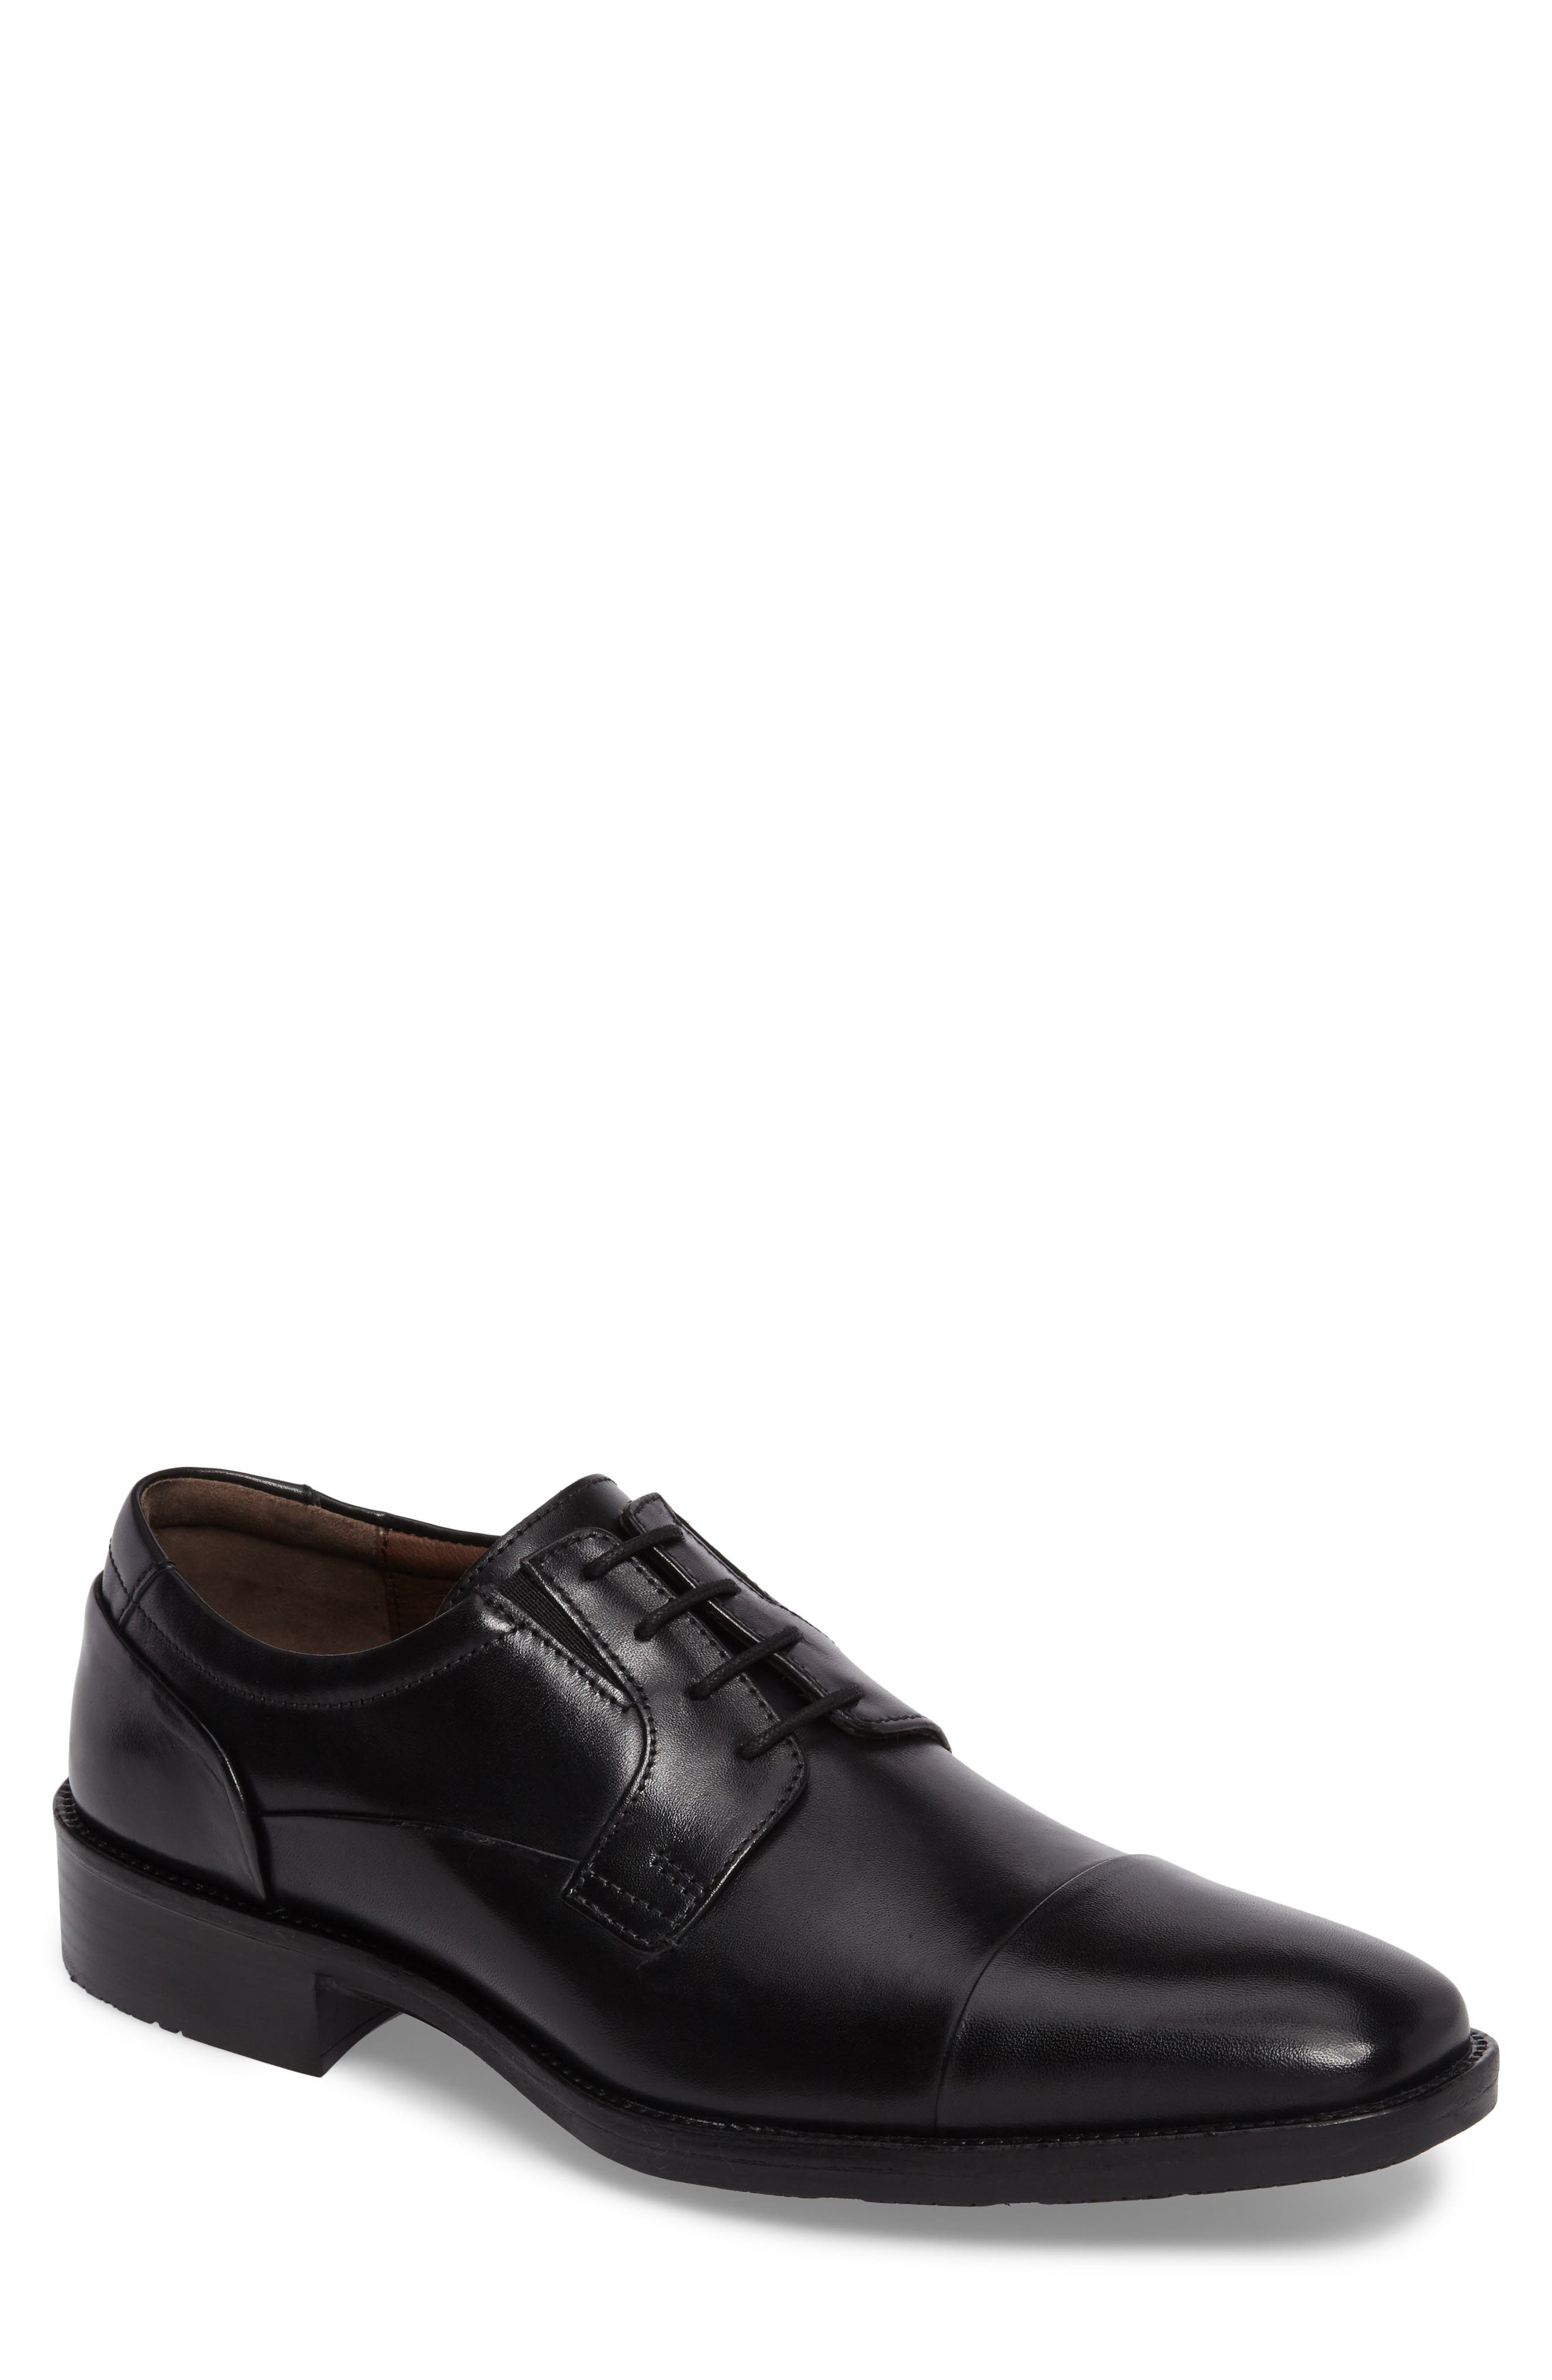 Lancaster Cap Toe Derby,                             Main thumbnail 1, color,                             Black